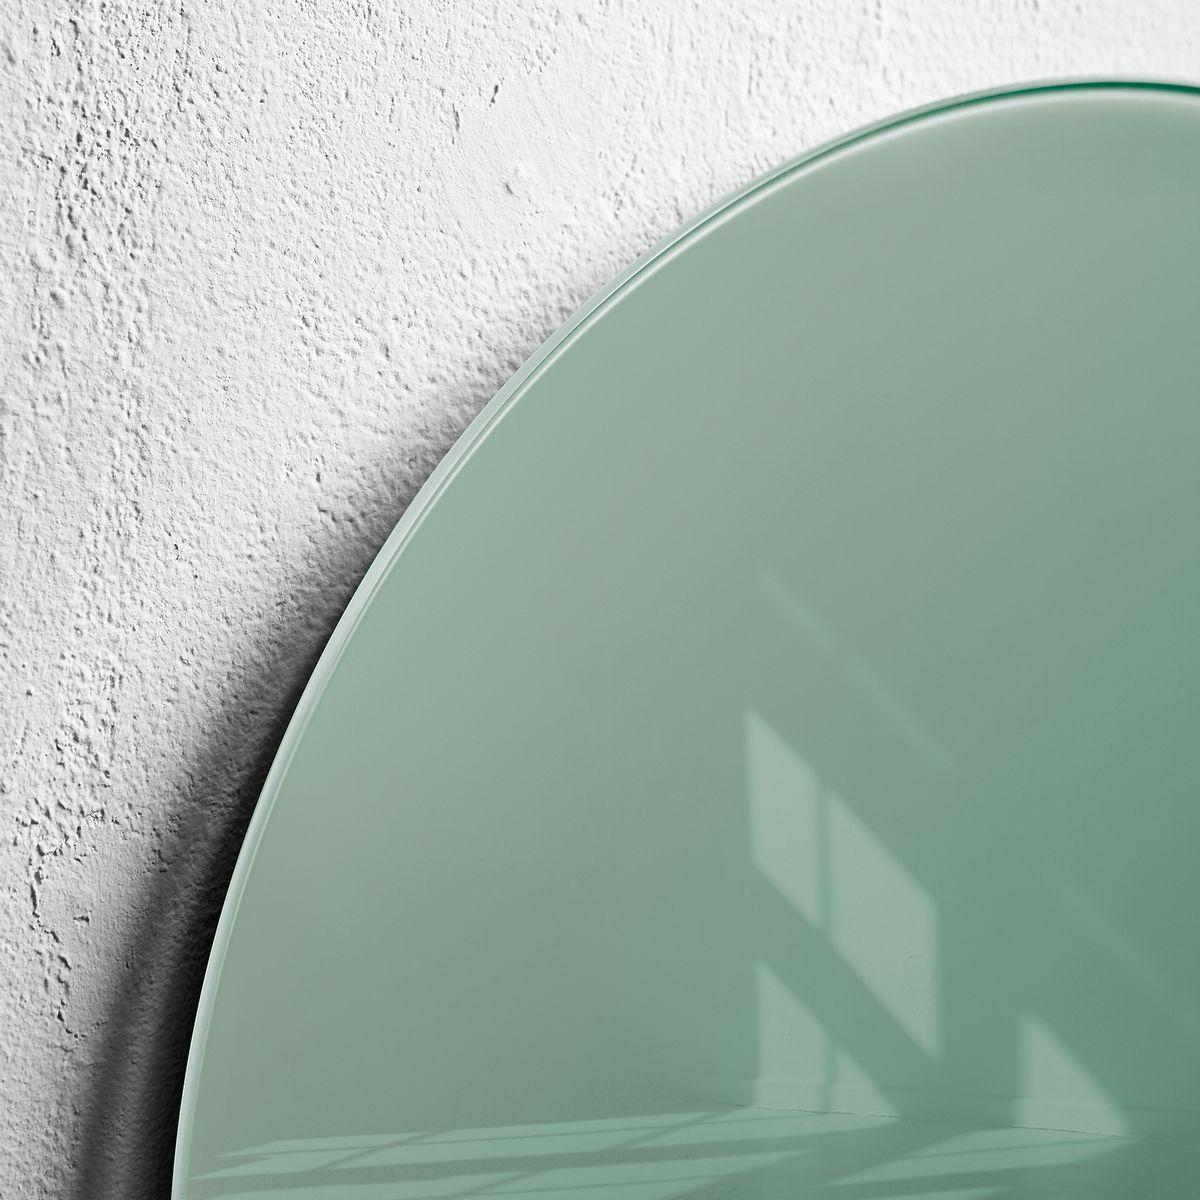 Glasmagnetboard-artverum-Detail-01-Smoky-Green-GL291